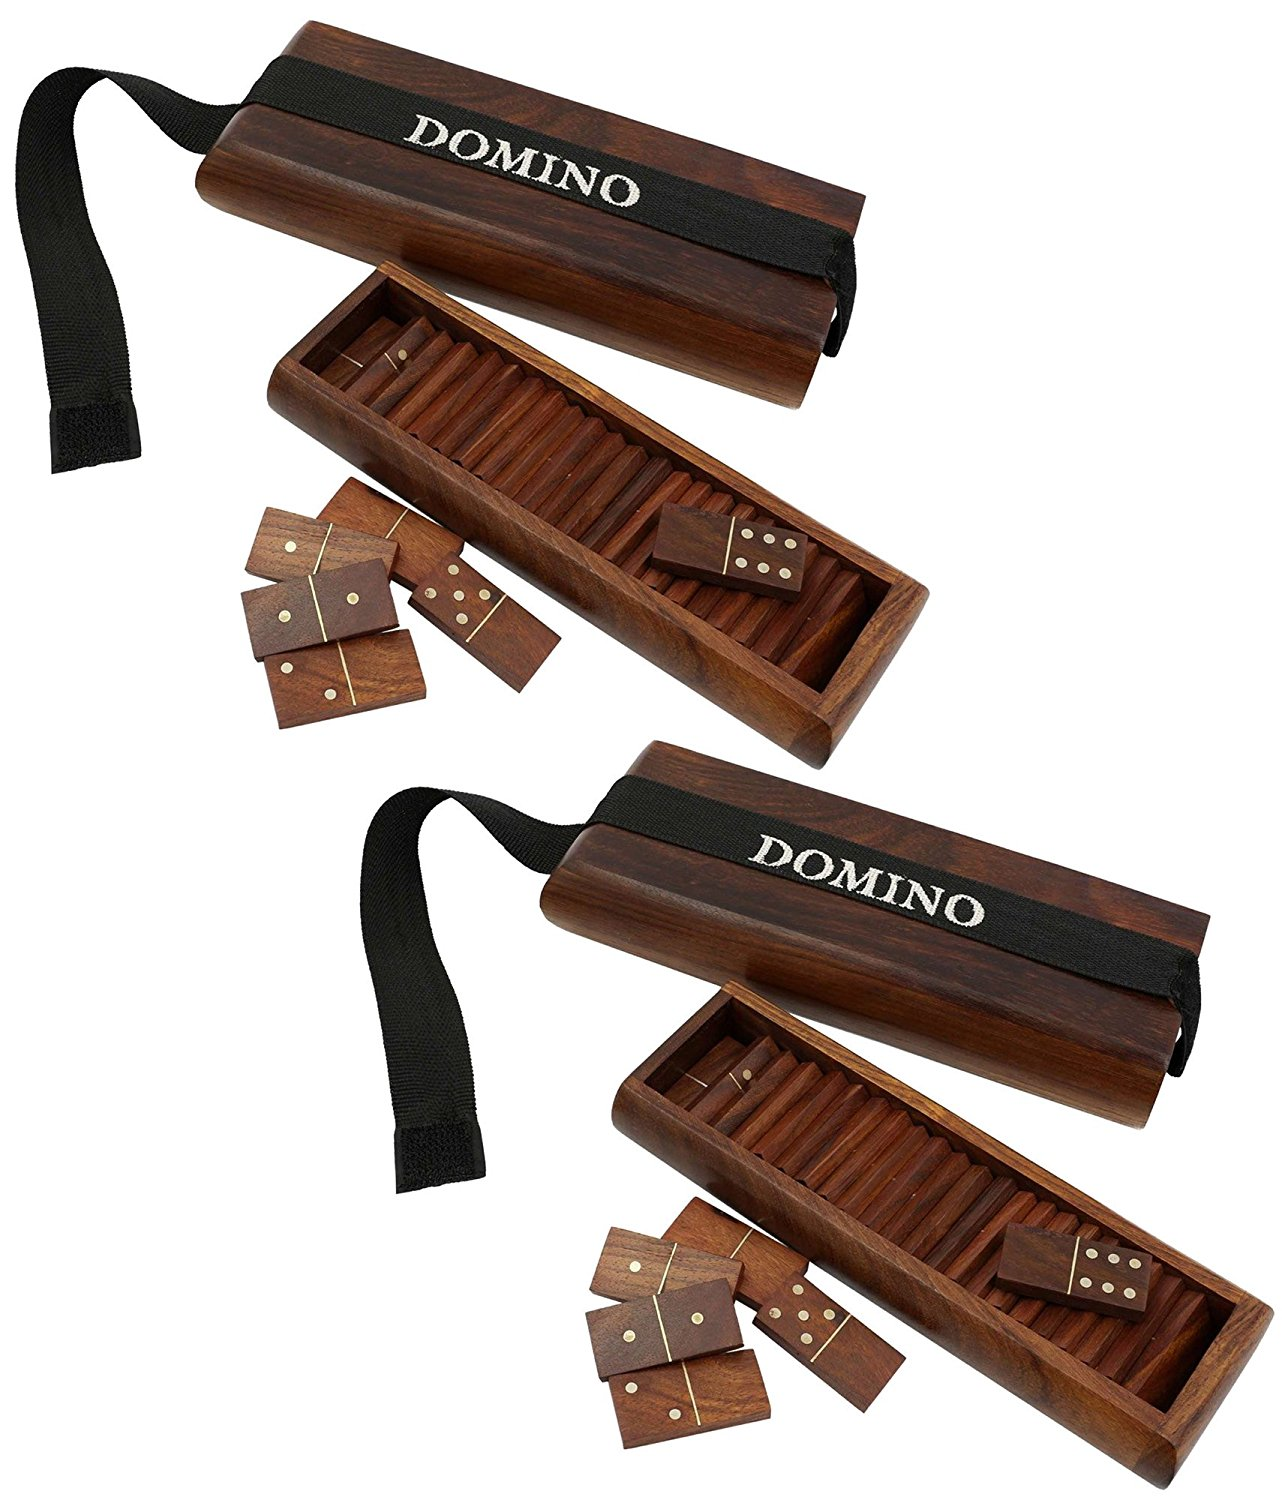 """Lot of 2 - Christmas Games Indian Wooden Domino Tile Game Tray - Complete Game Set - Travel Domino Set Double - 7"""" x 3"""" x 1.5"""""""